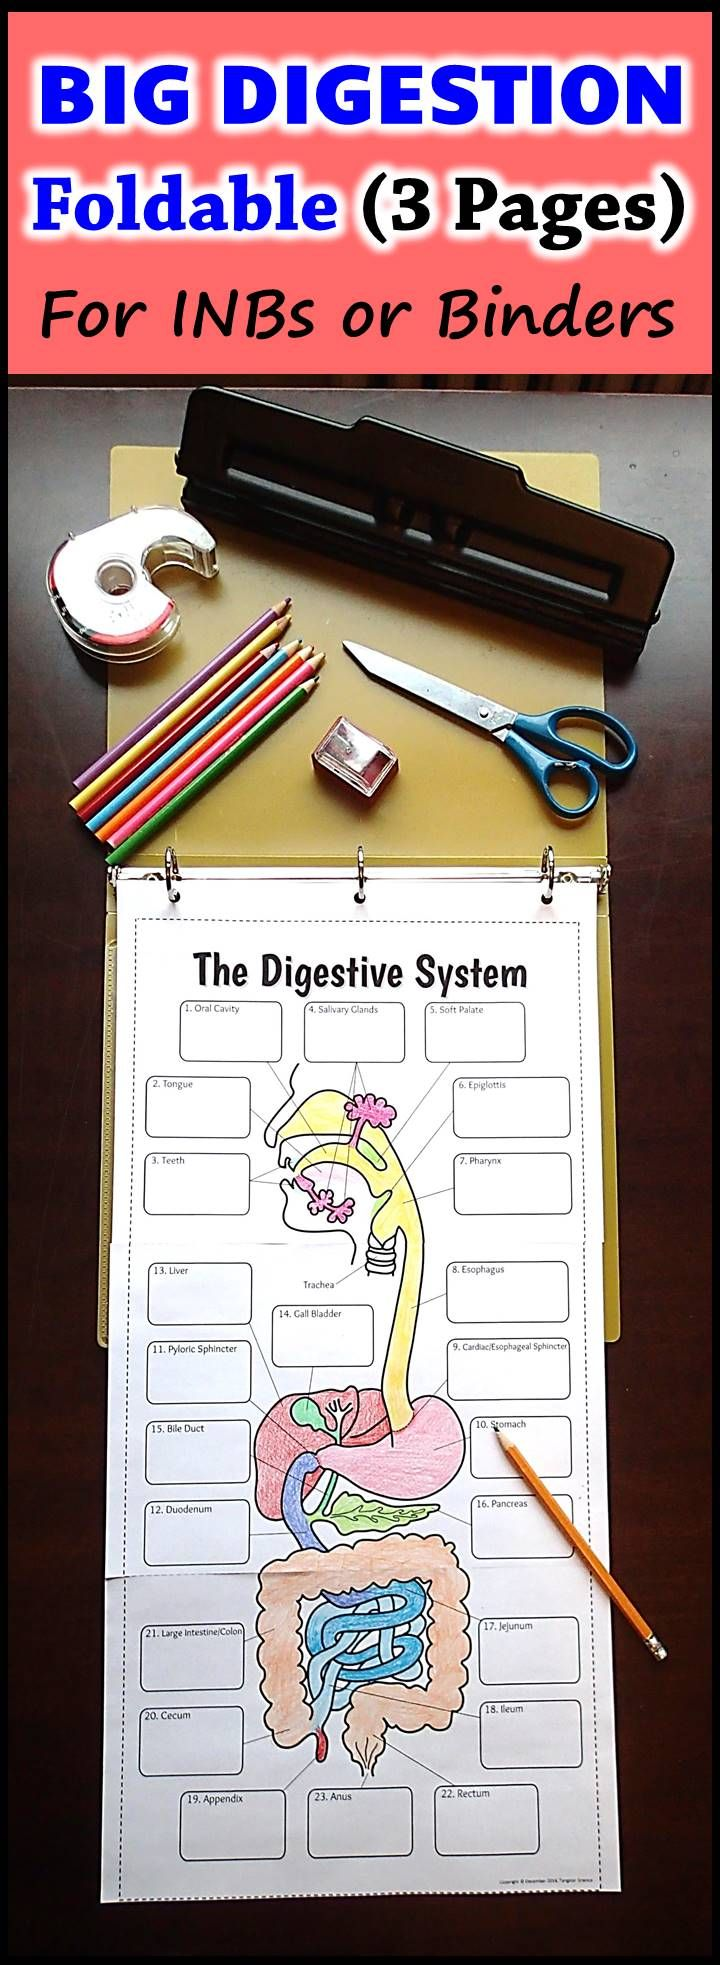 This Big Digestion Foldable is made from three pages taped together and is perfect for coloring and for recording a description of the functions. It can be inserted into a binder or put into an interactive notebook.  Students love the large, clear format.  Once completed, the large foldable can also be displayed in the class as a poster.